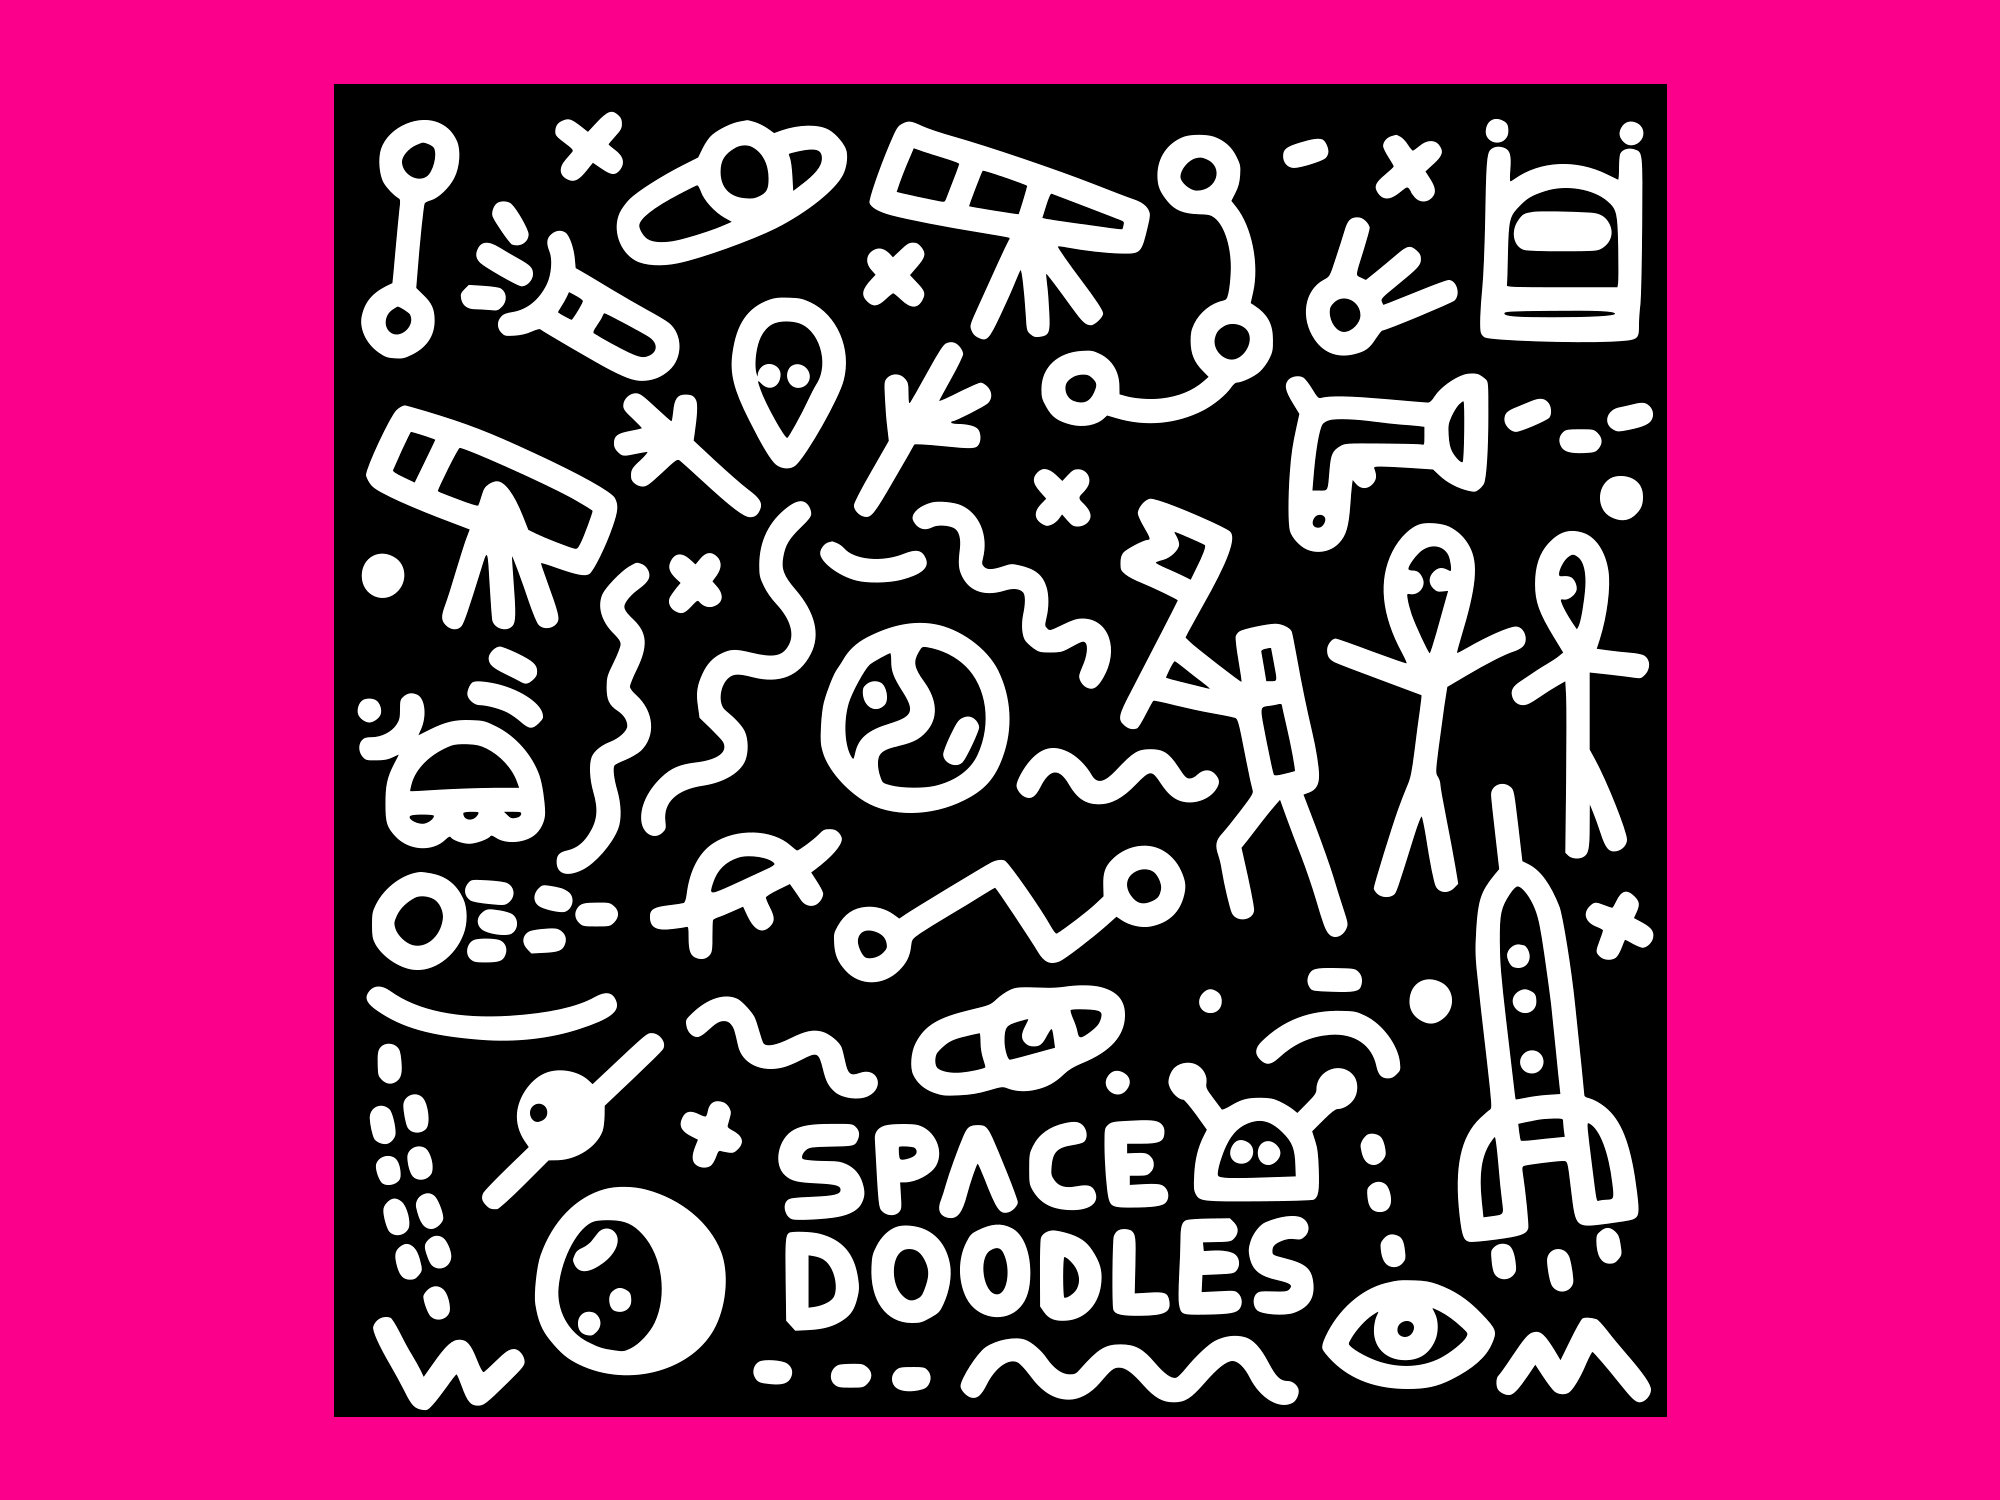 Download Free Space Doodles Set 2 Graphic By Anrasoft Creative Fabrica for Cricut Explore, Silhouette and other cutting machines.